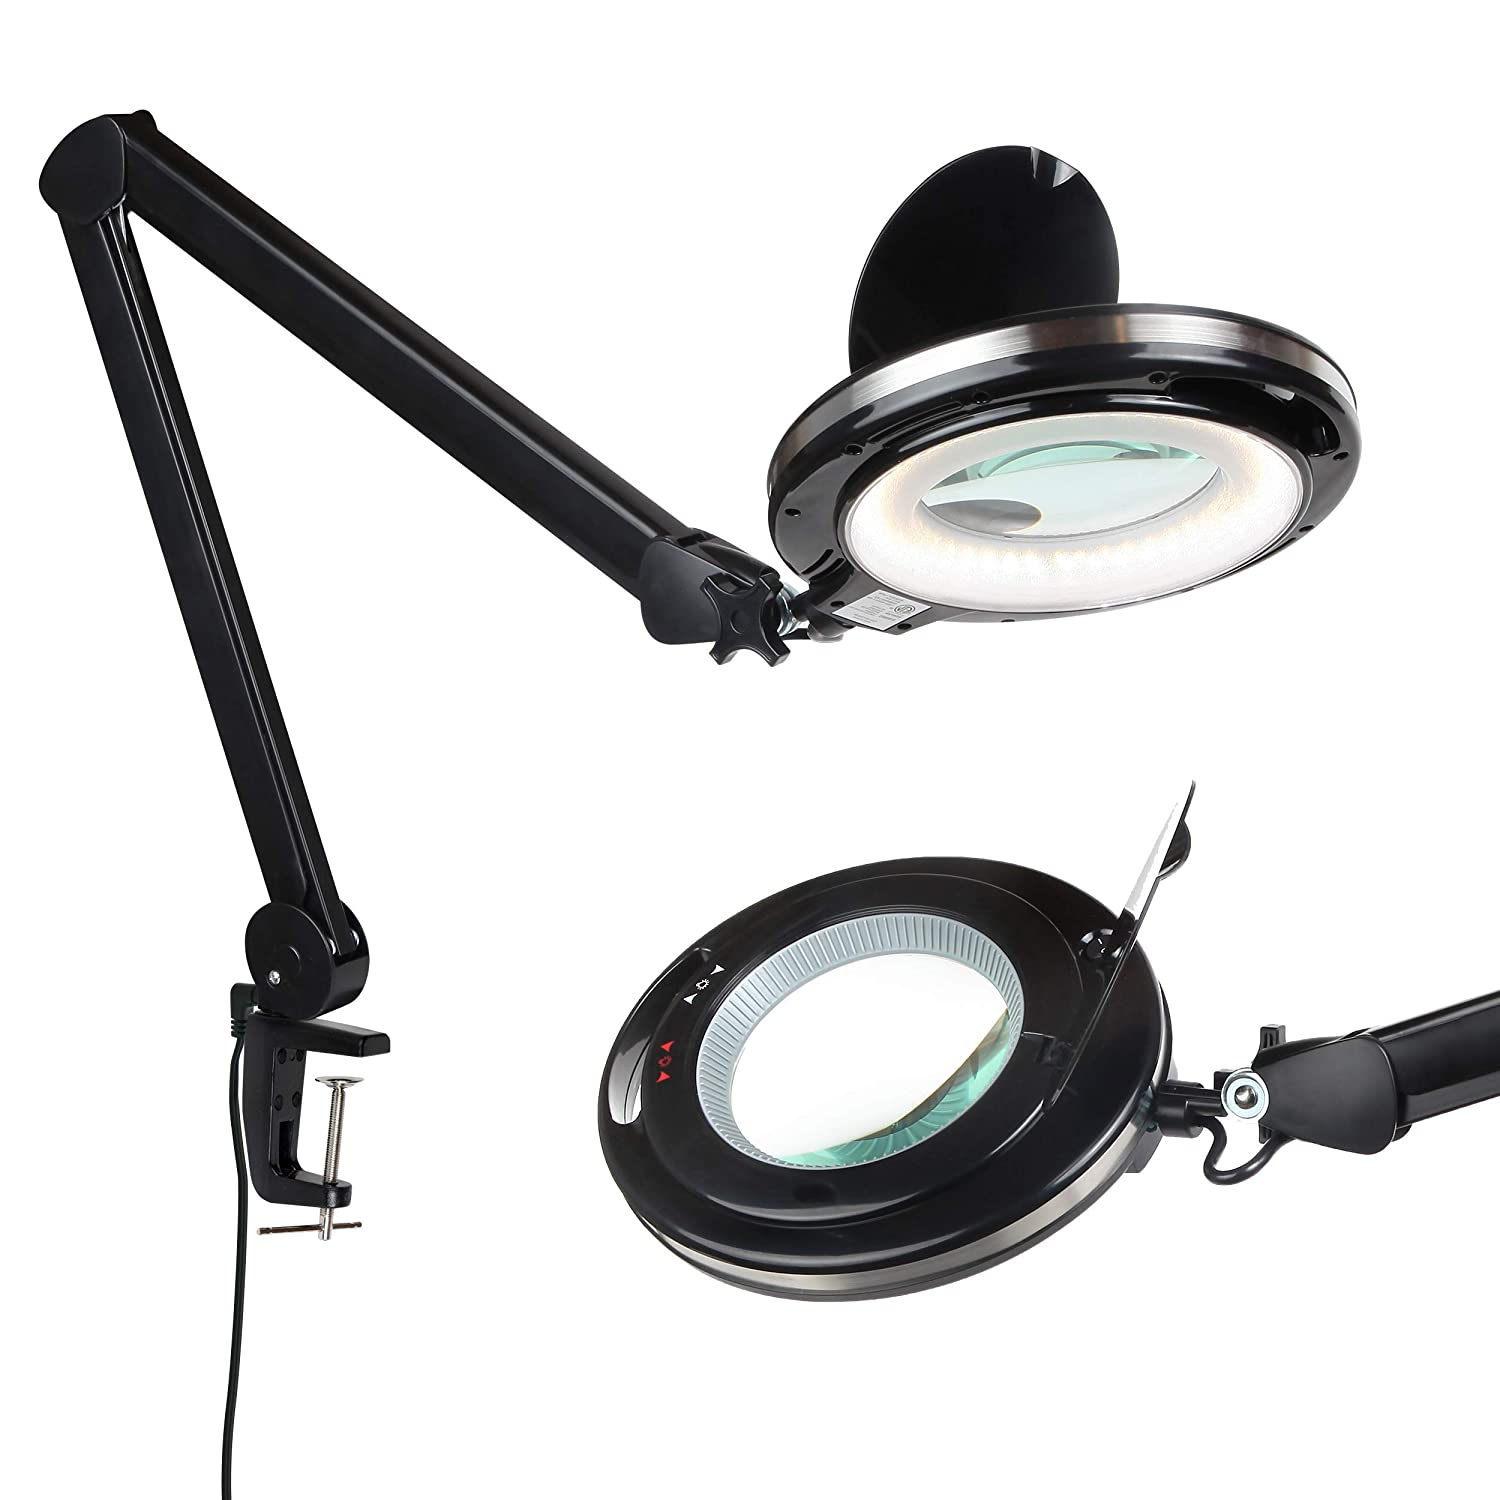 Brightech LightView PRO - LED Magnifying Glass Desk Lamp for Close Work - Bright, Lighted Magnifier for Reading, Crafts & Pro Tasks - Light Color Adjustable & Dimmable - 2.25x Magnification